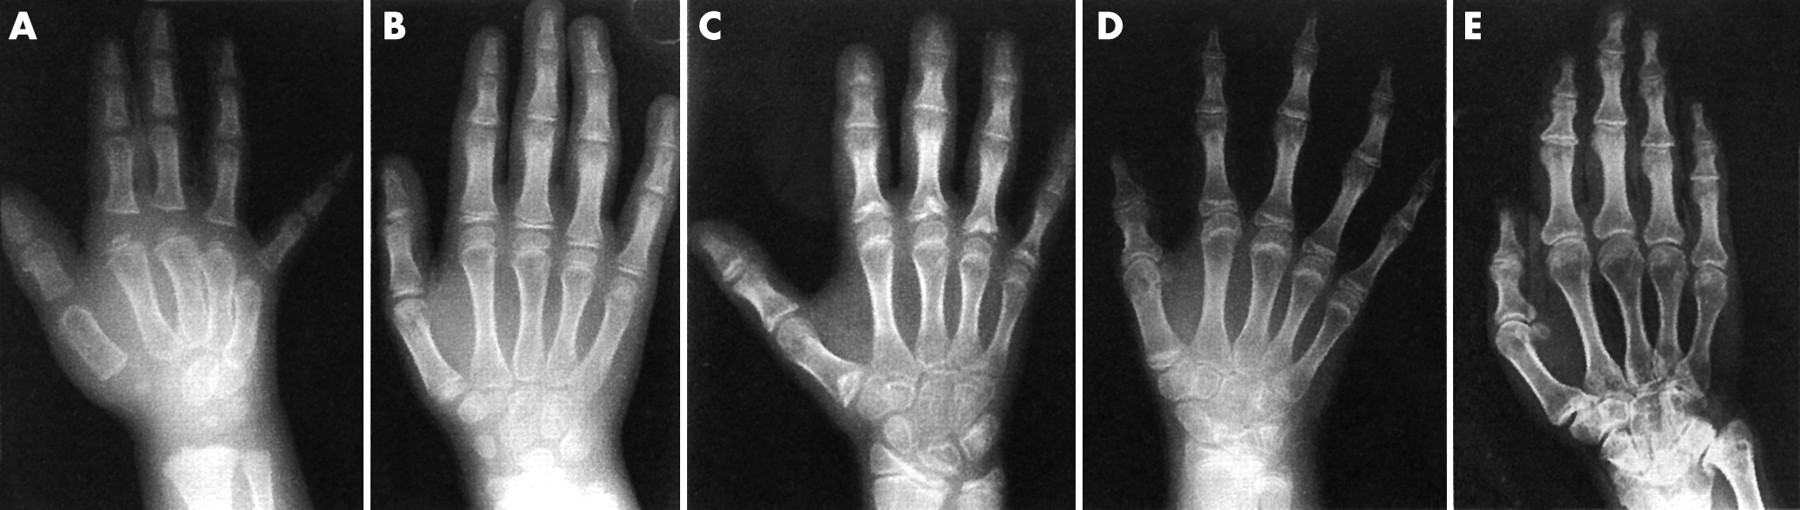 Recessive multiple epiphyseal dysplasia (rMED): phenotype delineation ...